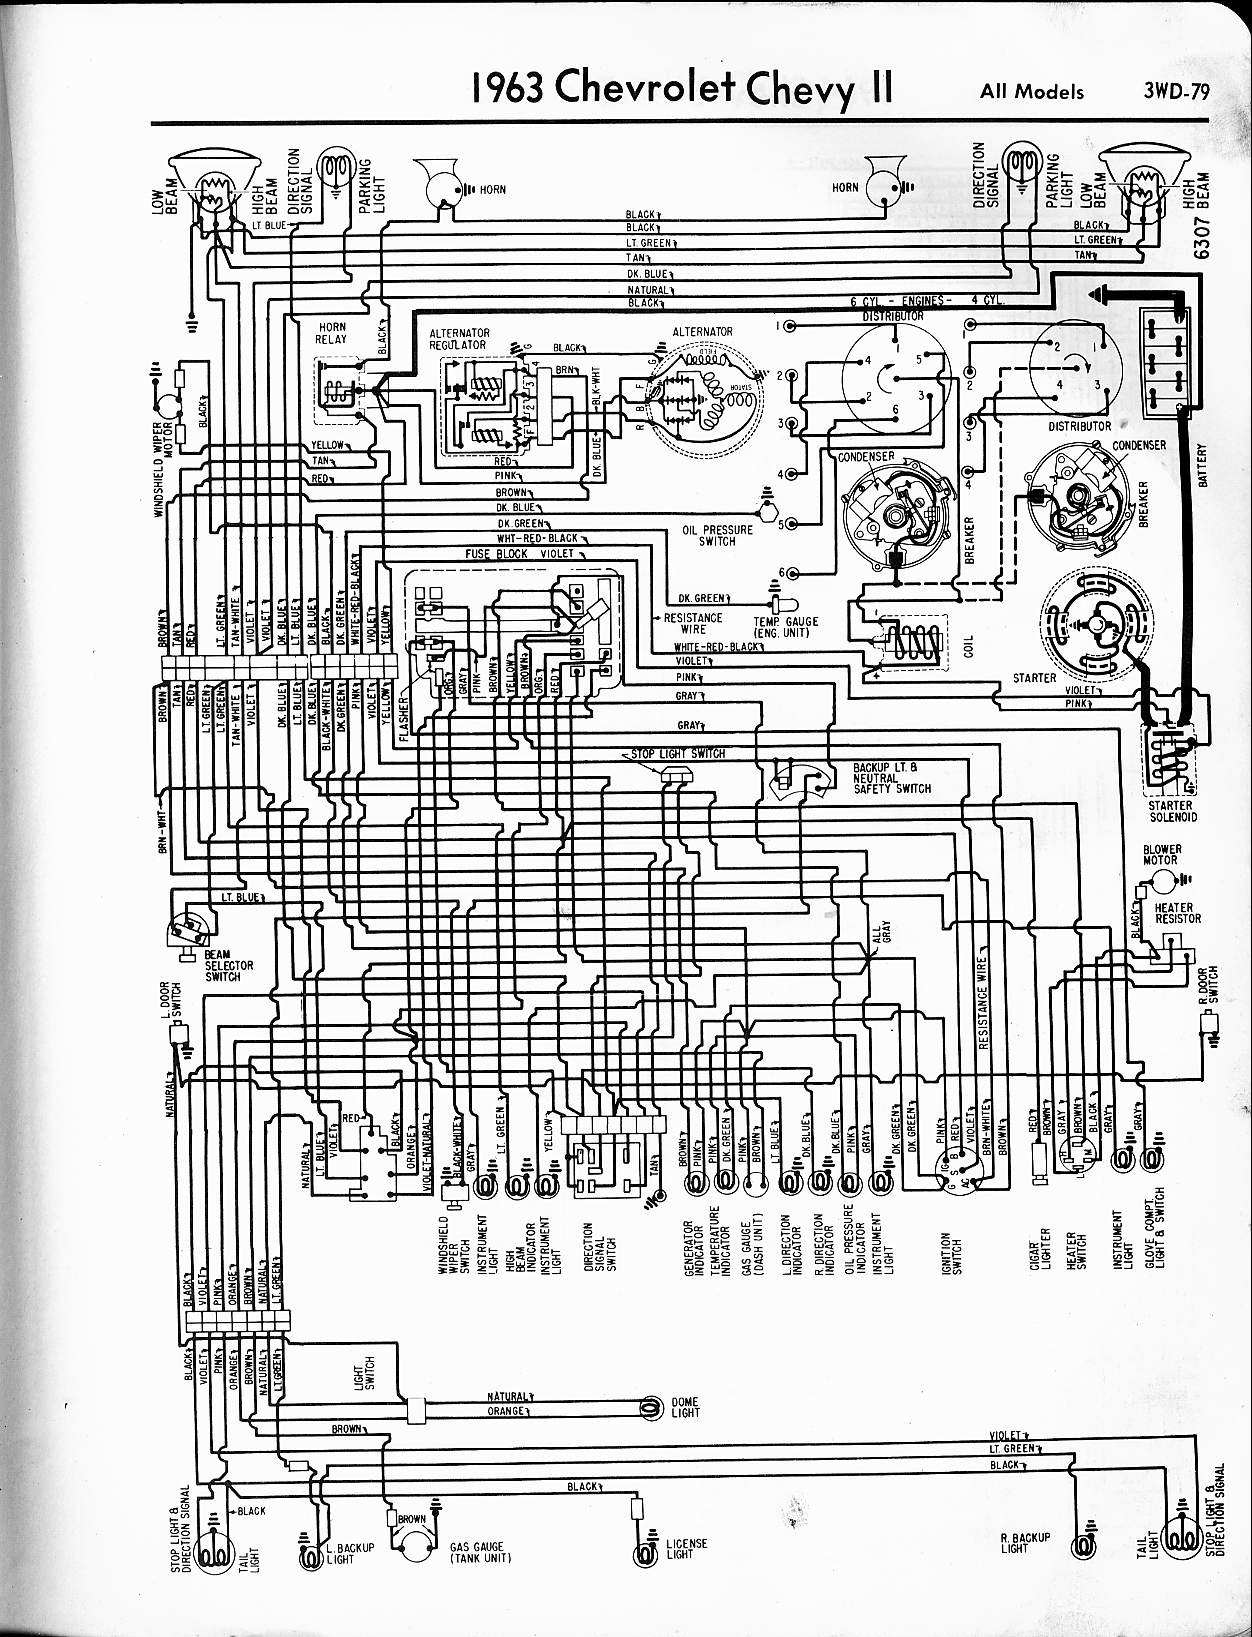 Sierrra Solenoid Switch Wiring Diagram Schematics Diagrams 1970 Chrysler Ignition 1963 Corvette Starter House Symbols U2022 Rh Maxturner Co